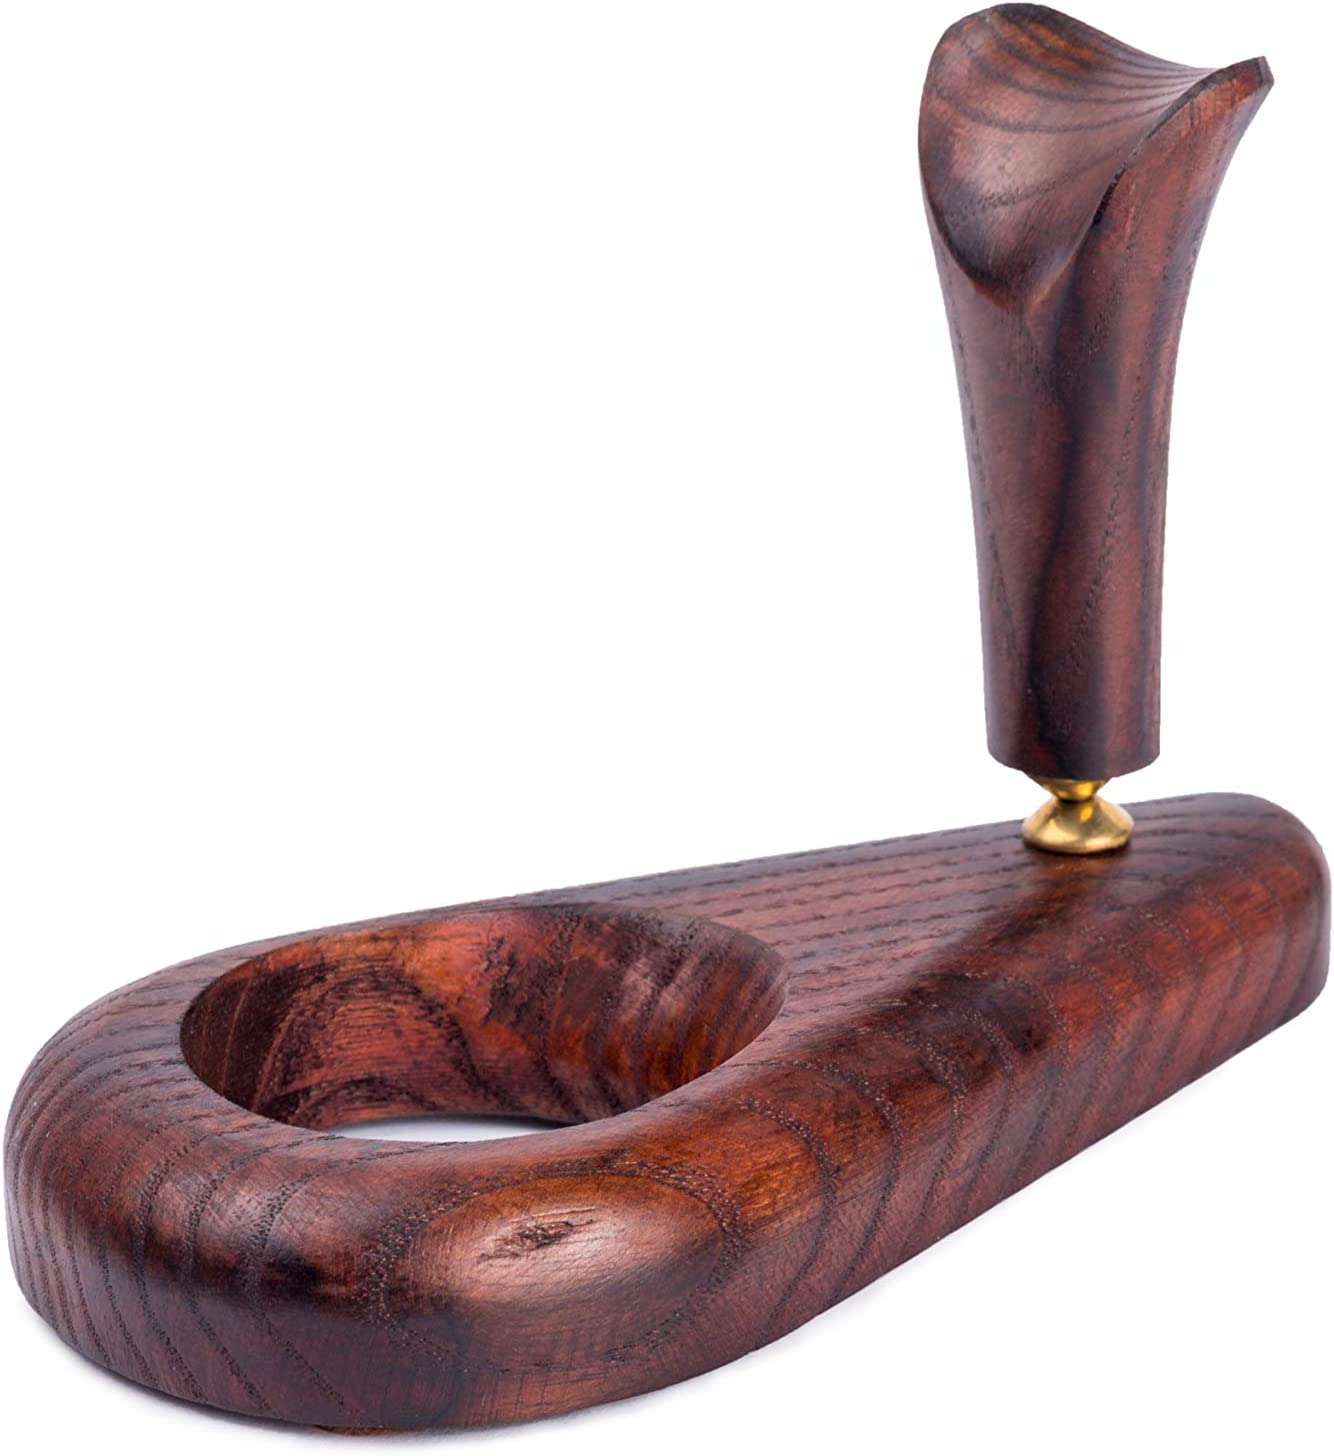 Tobacco Pipe Stand White Drop for one Smoking Bowl Single Rack Handmade Wooden Holder for 1 pipe Gift for Smoker Christmas gift